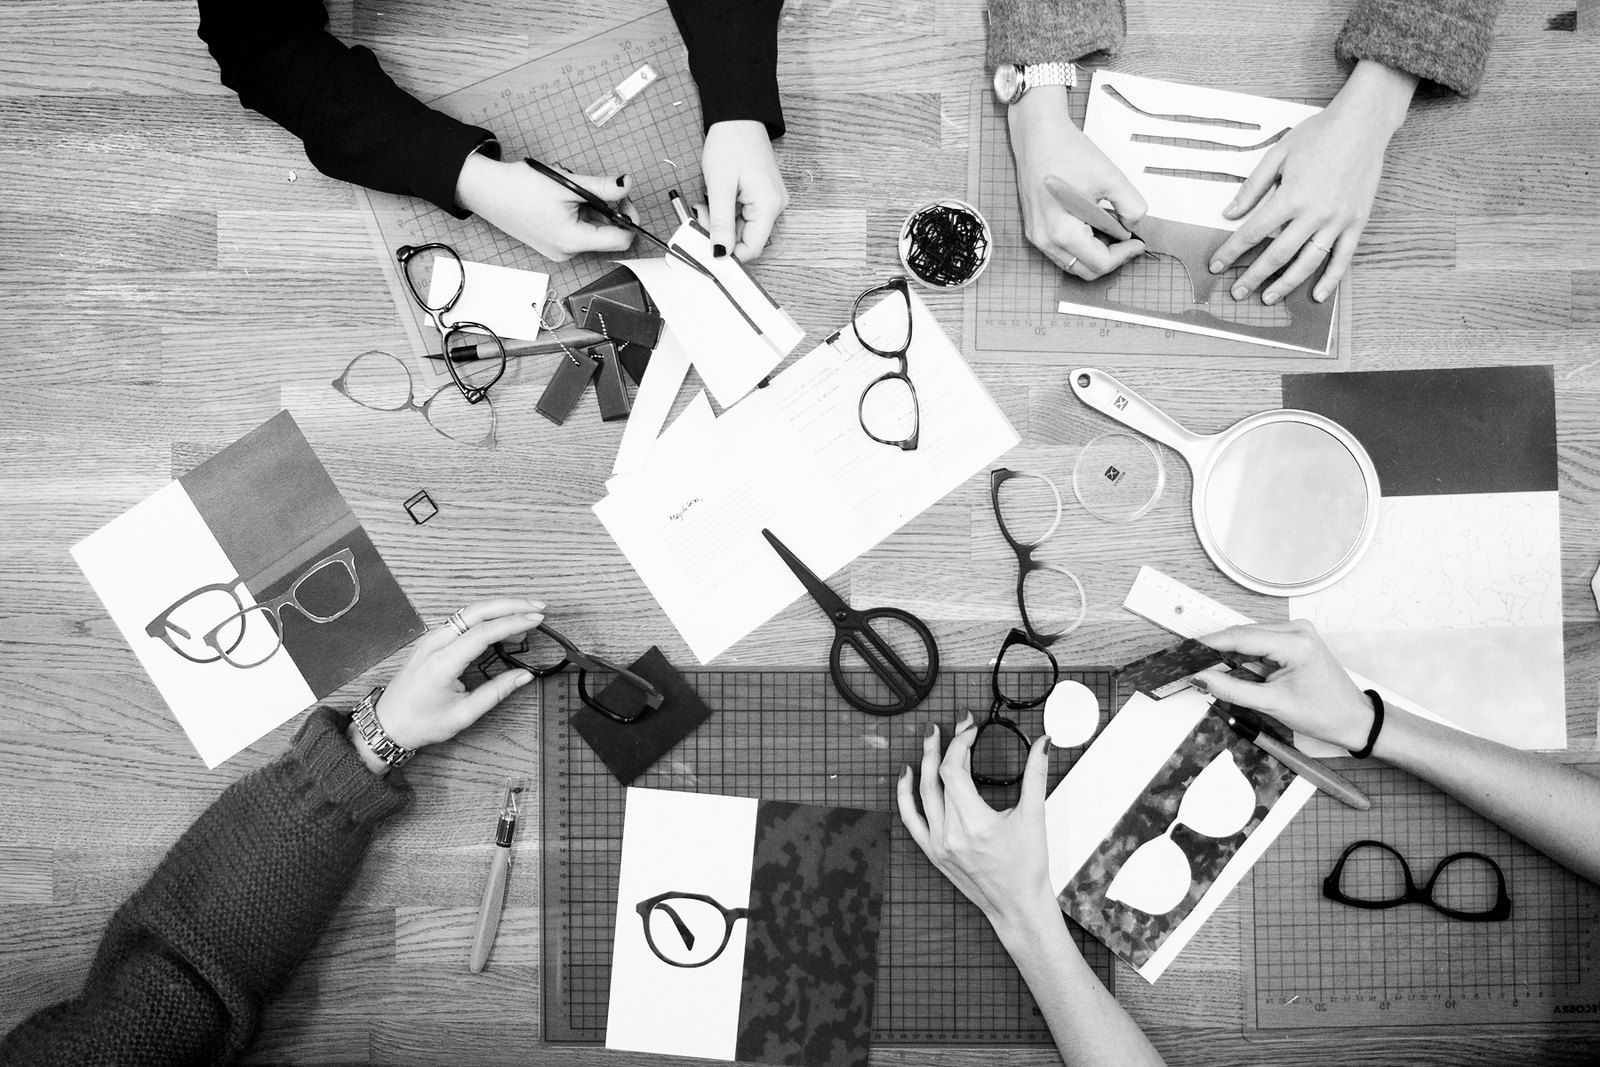 design day mister spex behind the scenes blogger workshop bloggers glasses collection creating diy art selfmade how to beauty beautiful fun girlfriends ricarda schernus fashionblogger cats & dogs modeblog berlin fashionblogger 3